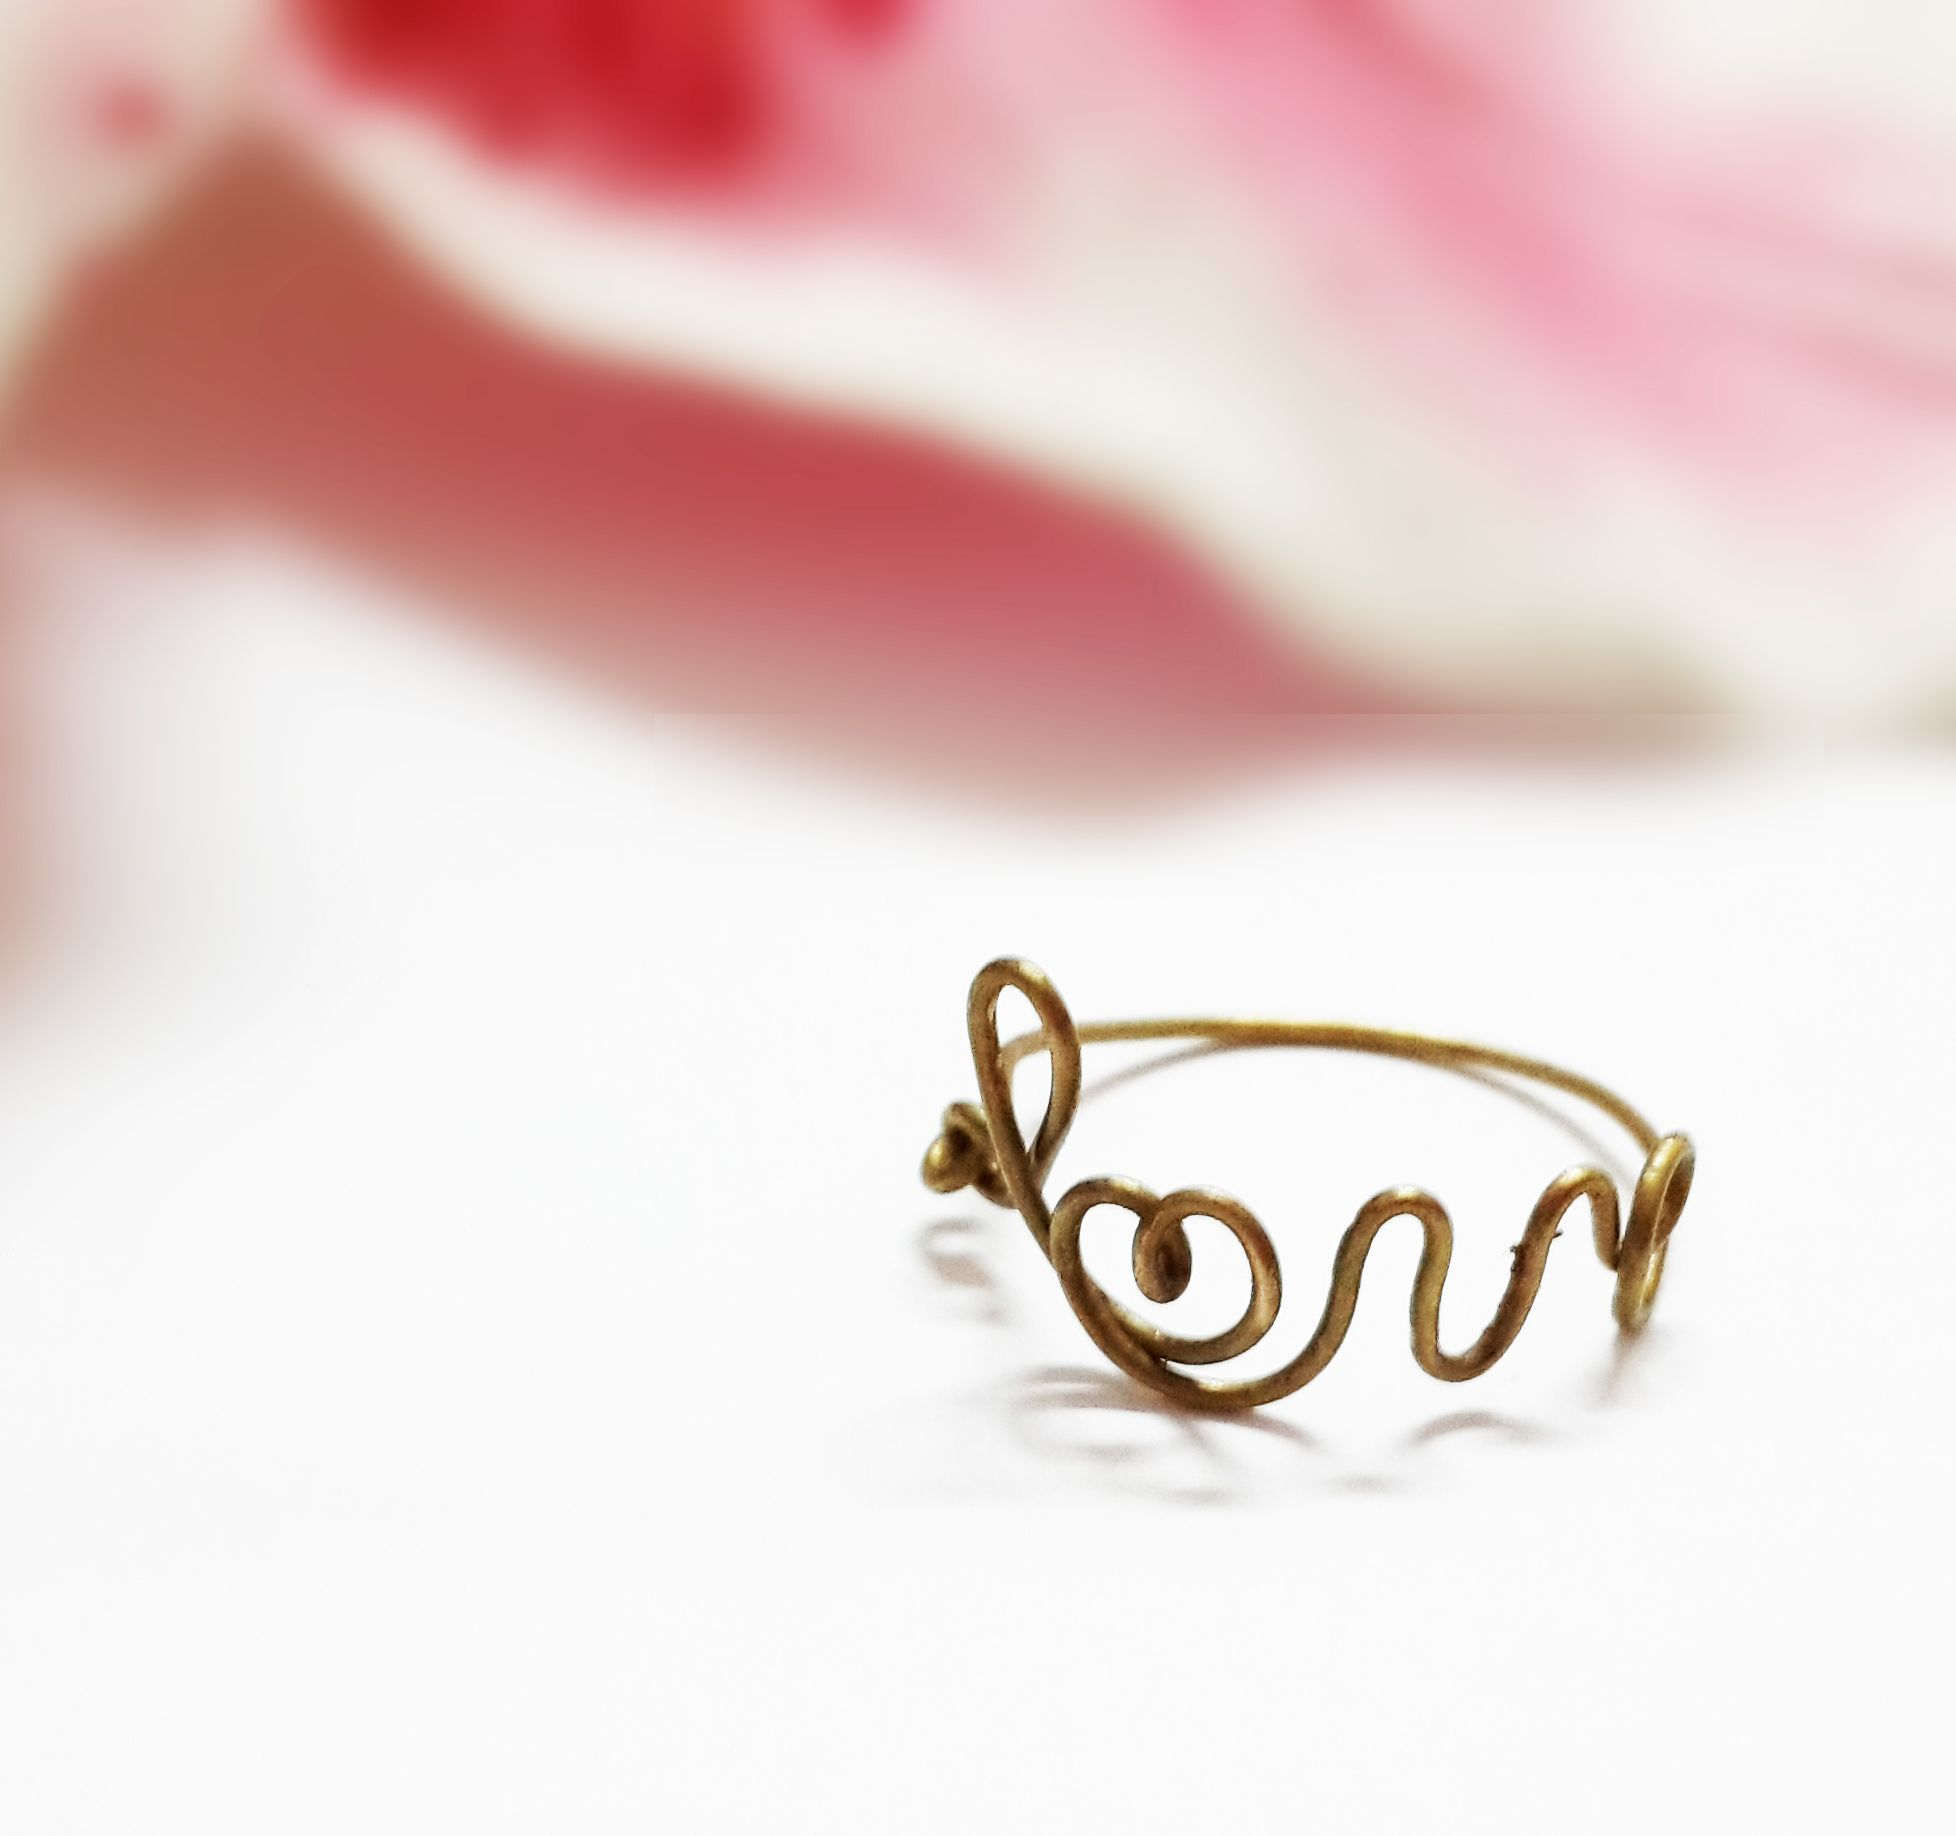 I am making this brass love wire ring. It's nice, isn't it.:)